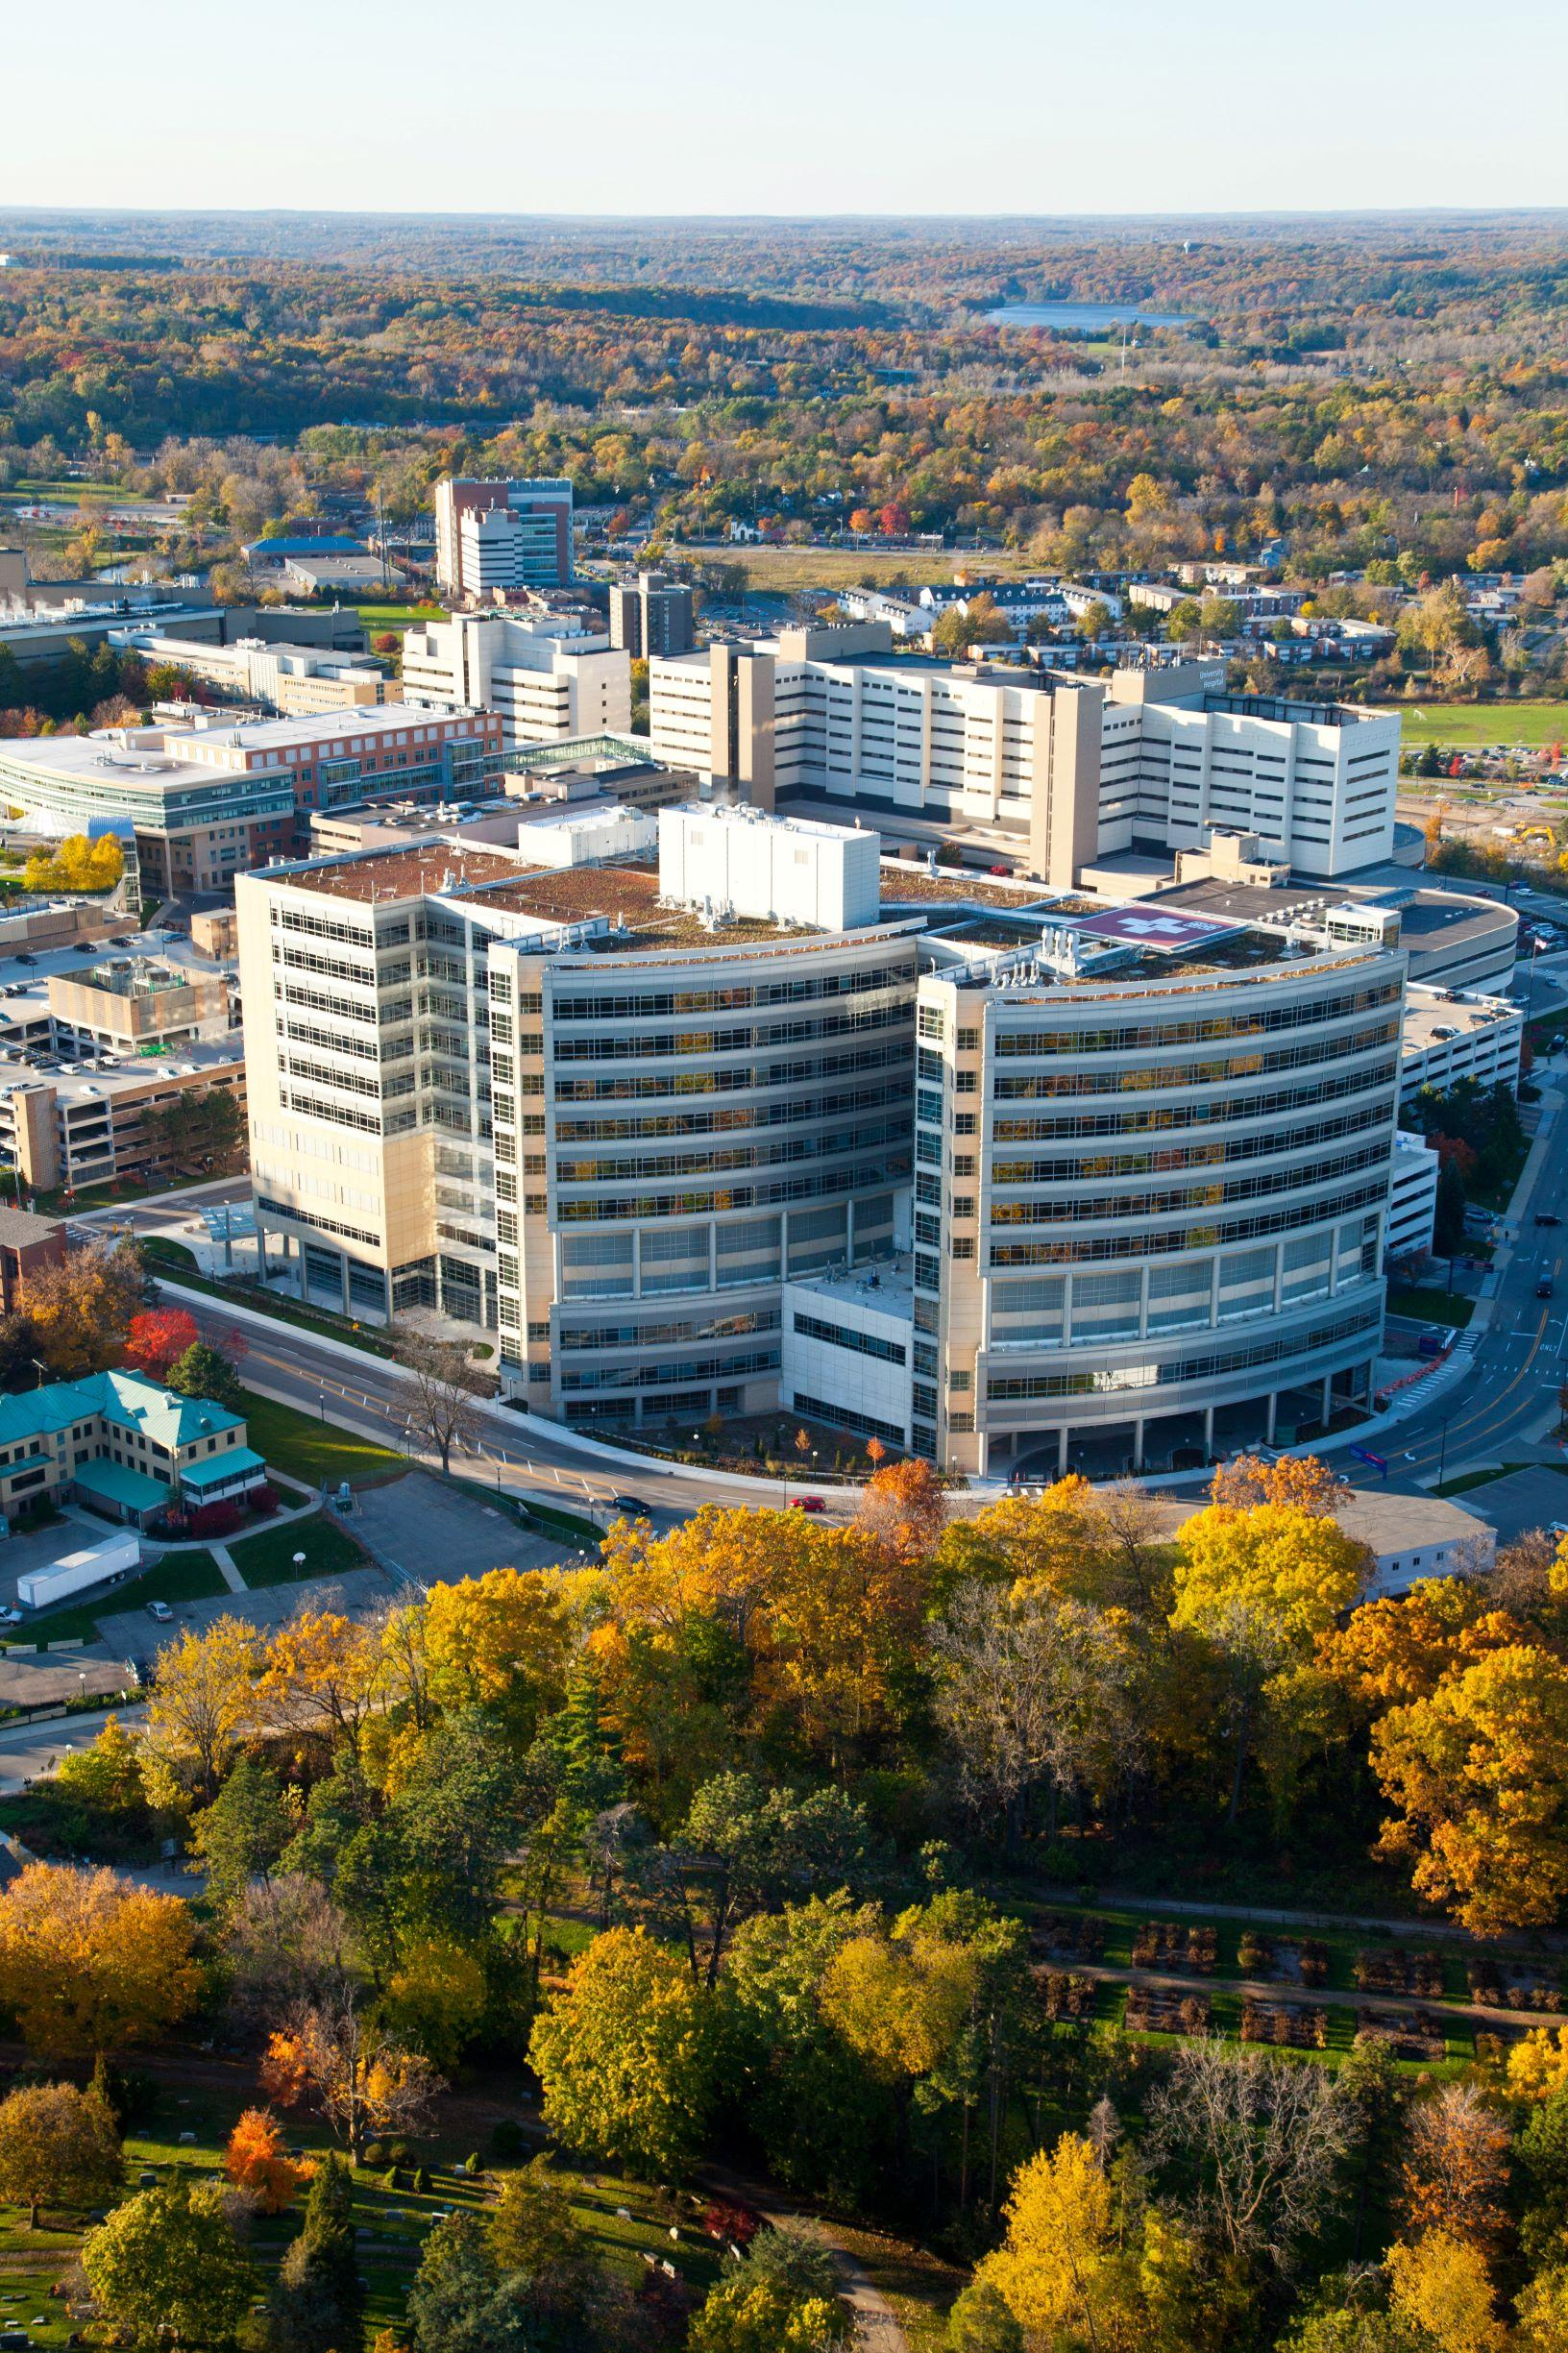 C.S. Mott Children's Hospital aerial shot